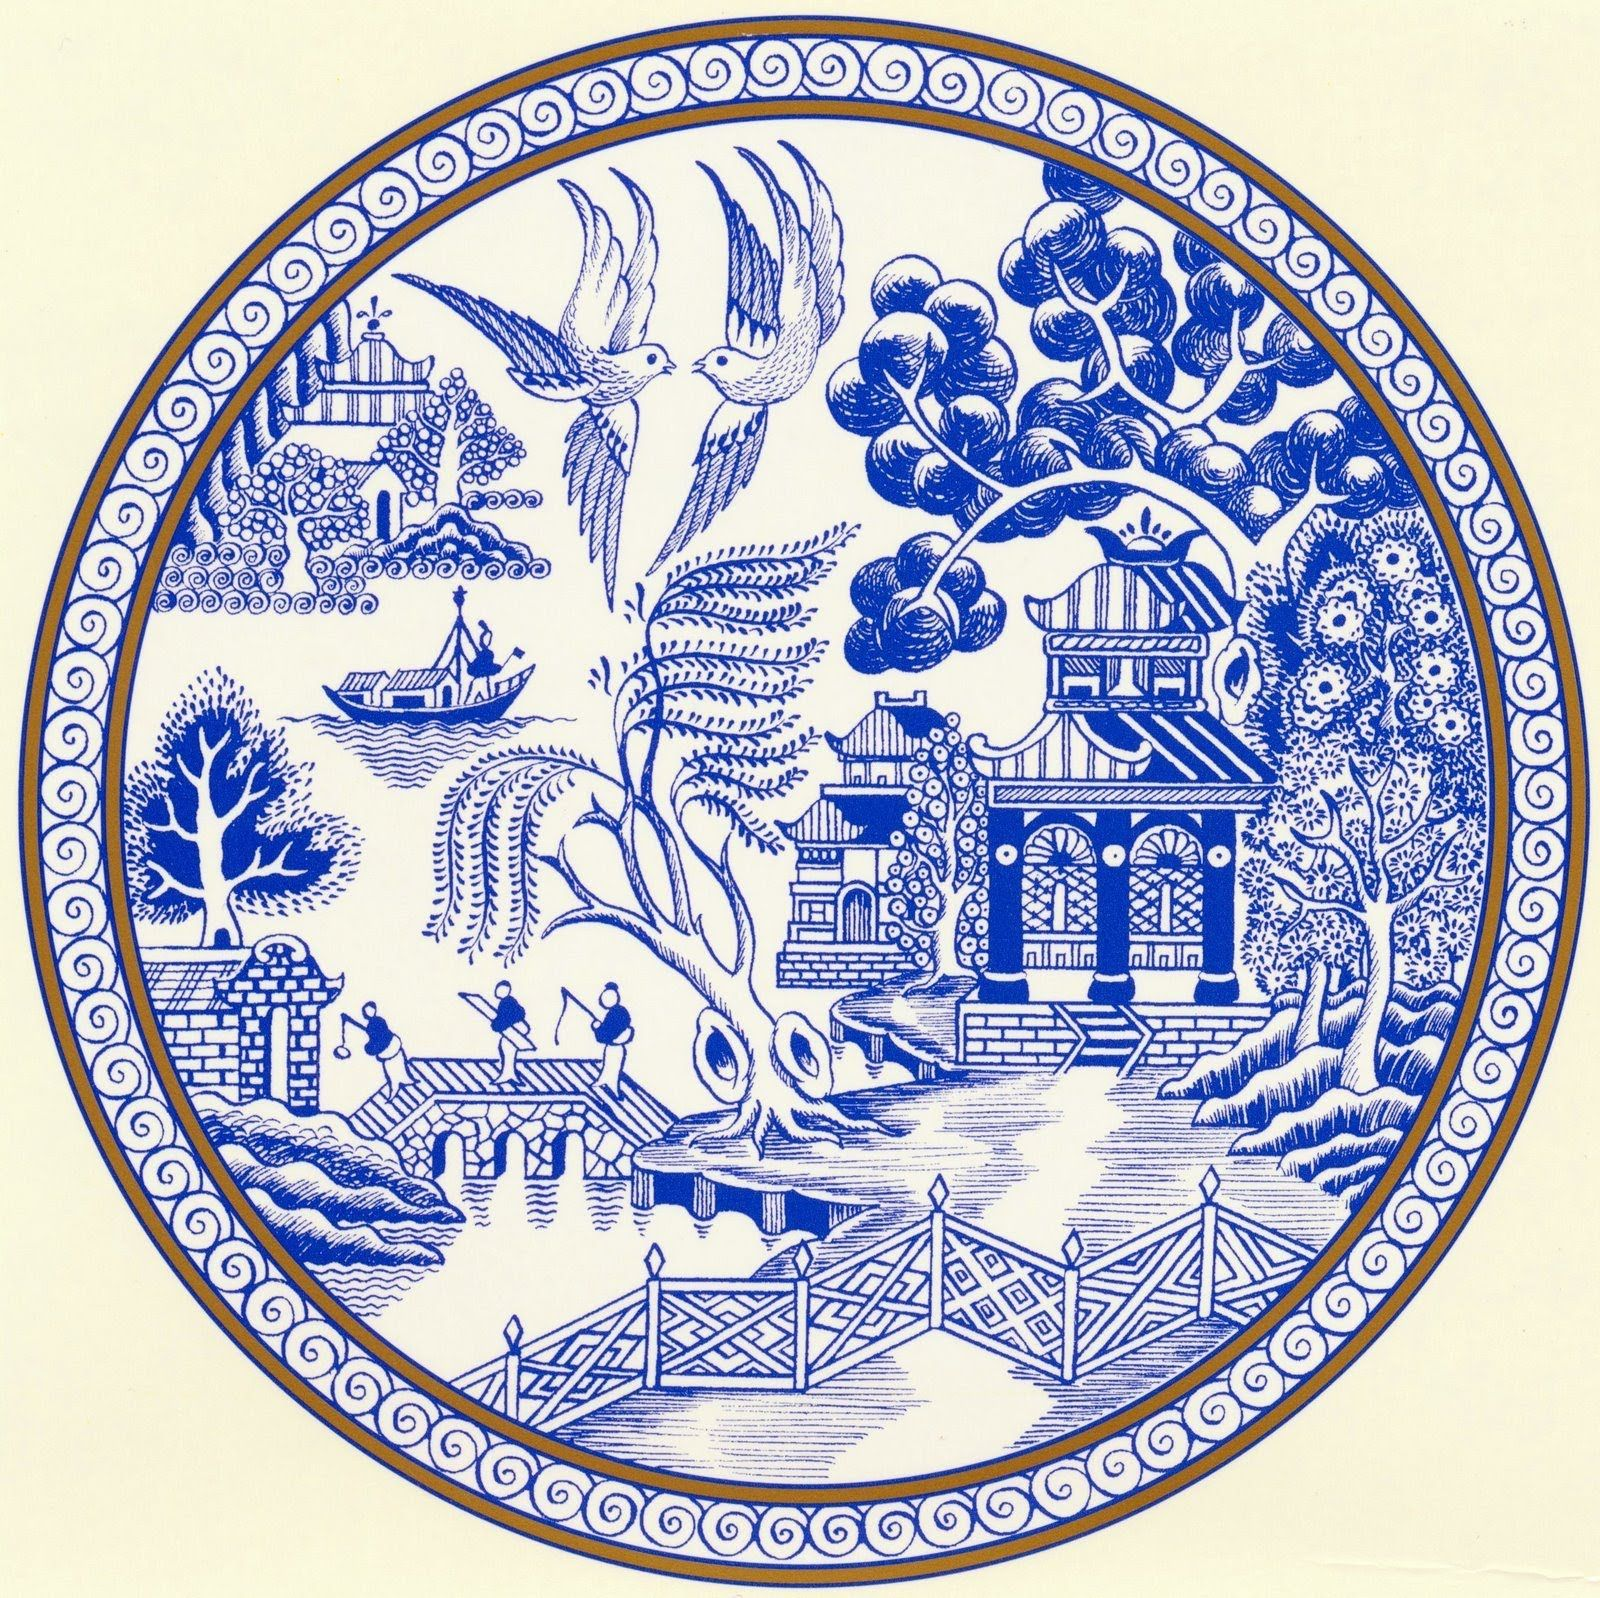 The Willow Pattern Poem